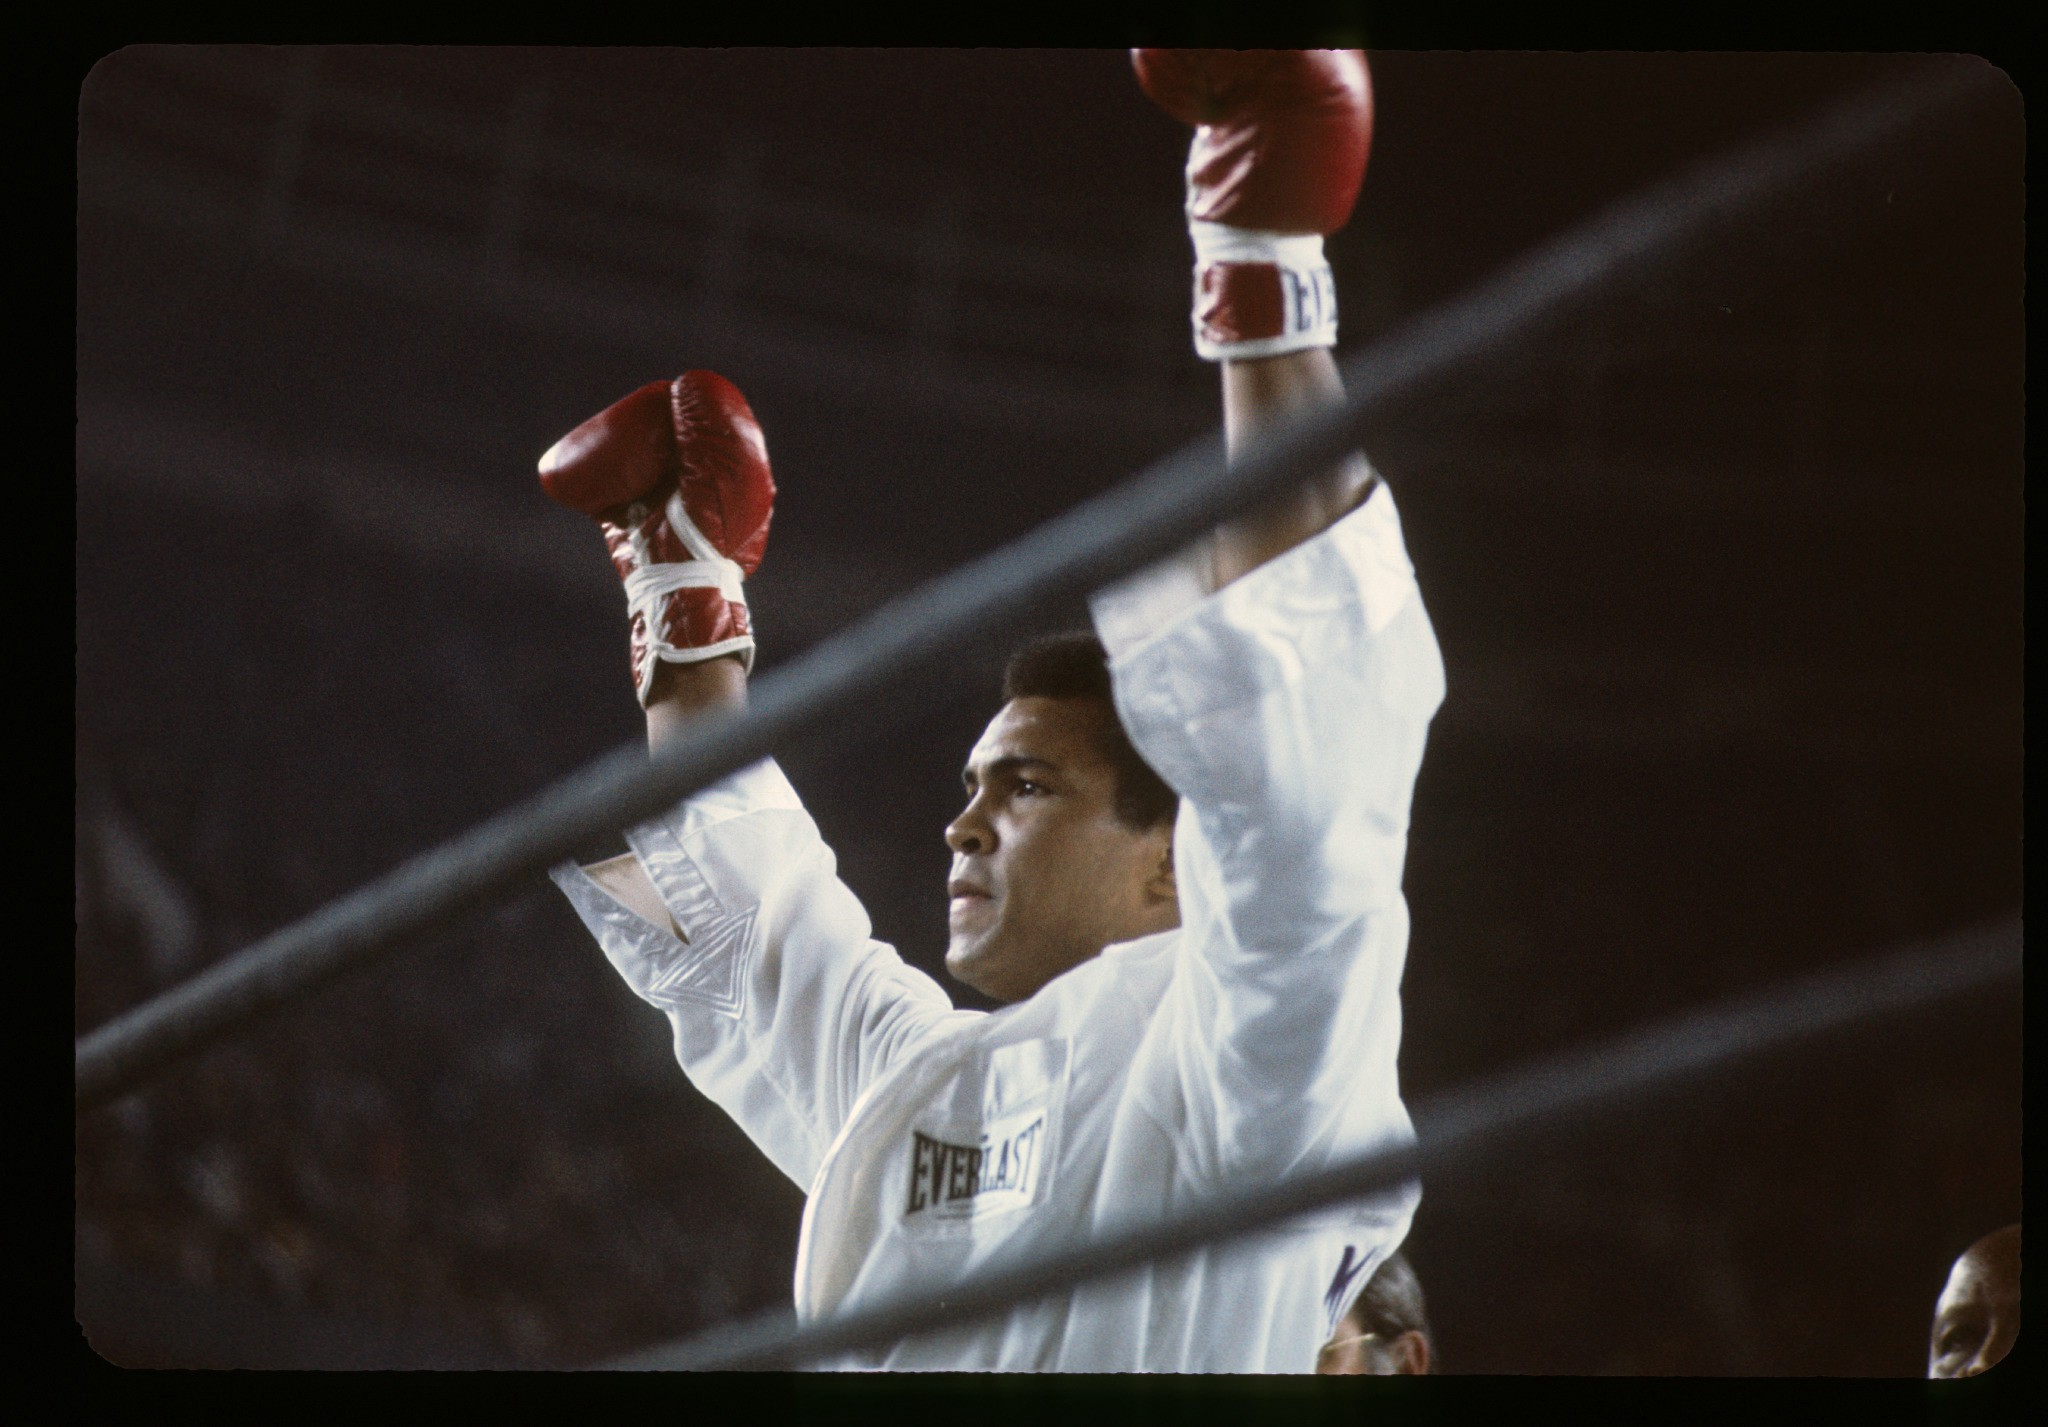 Searchlight Developing Film About Muhammad Ali's Refusal to Serve in Military (EXCLUSIVE)